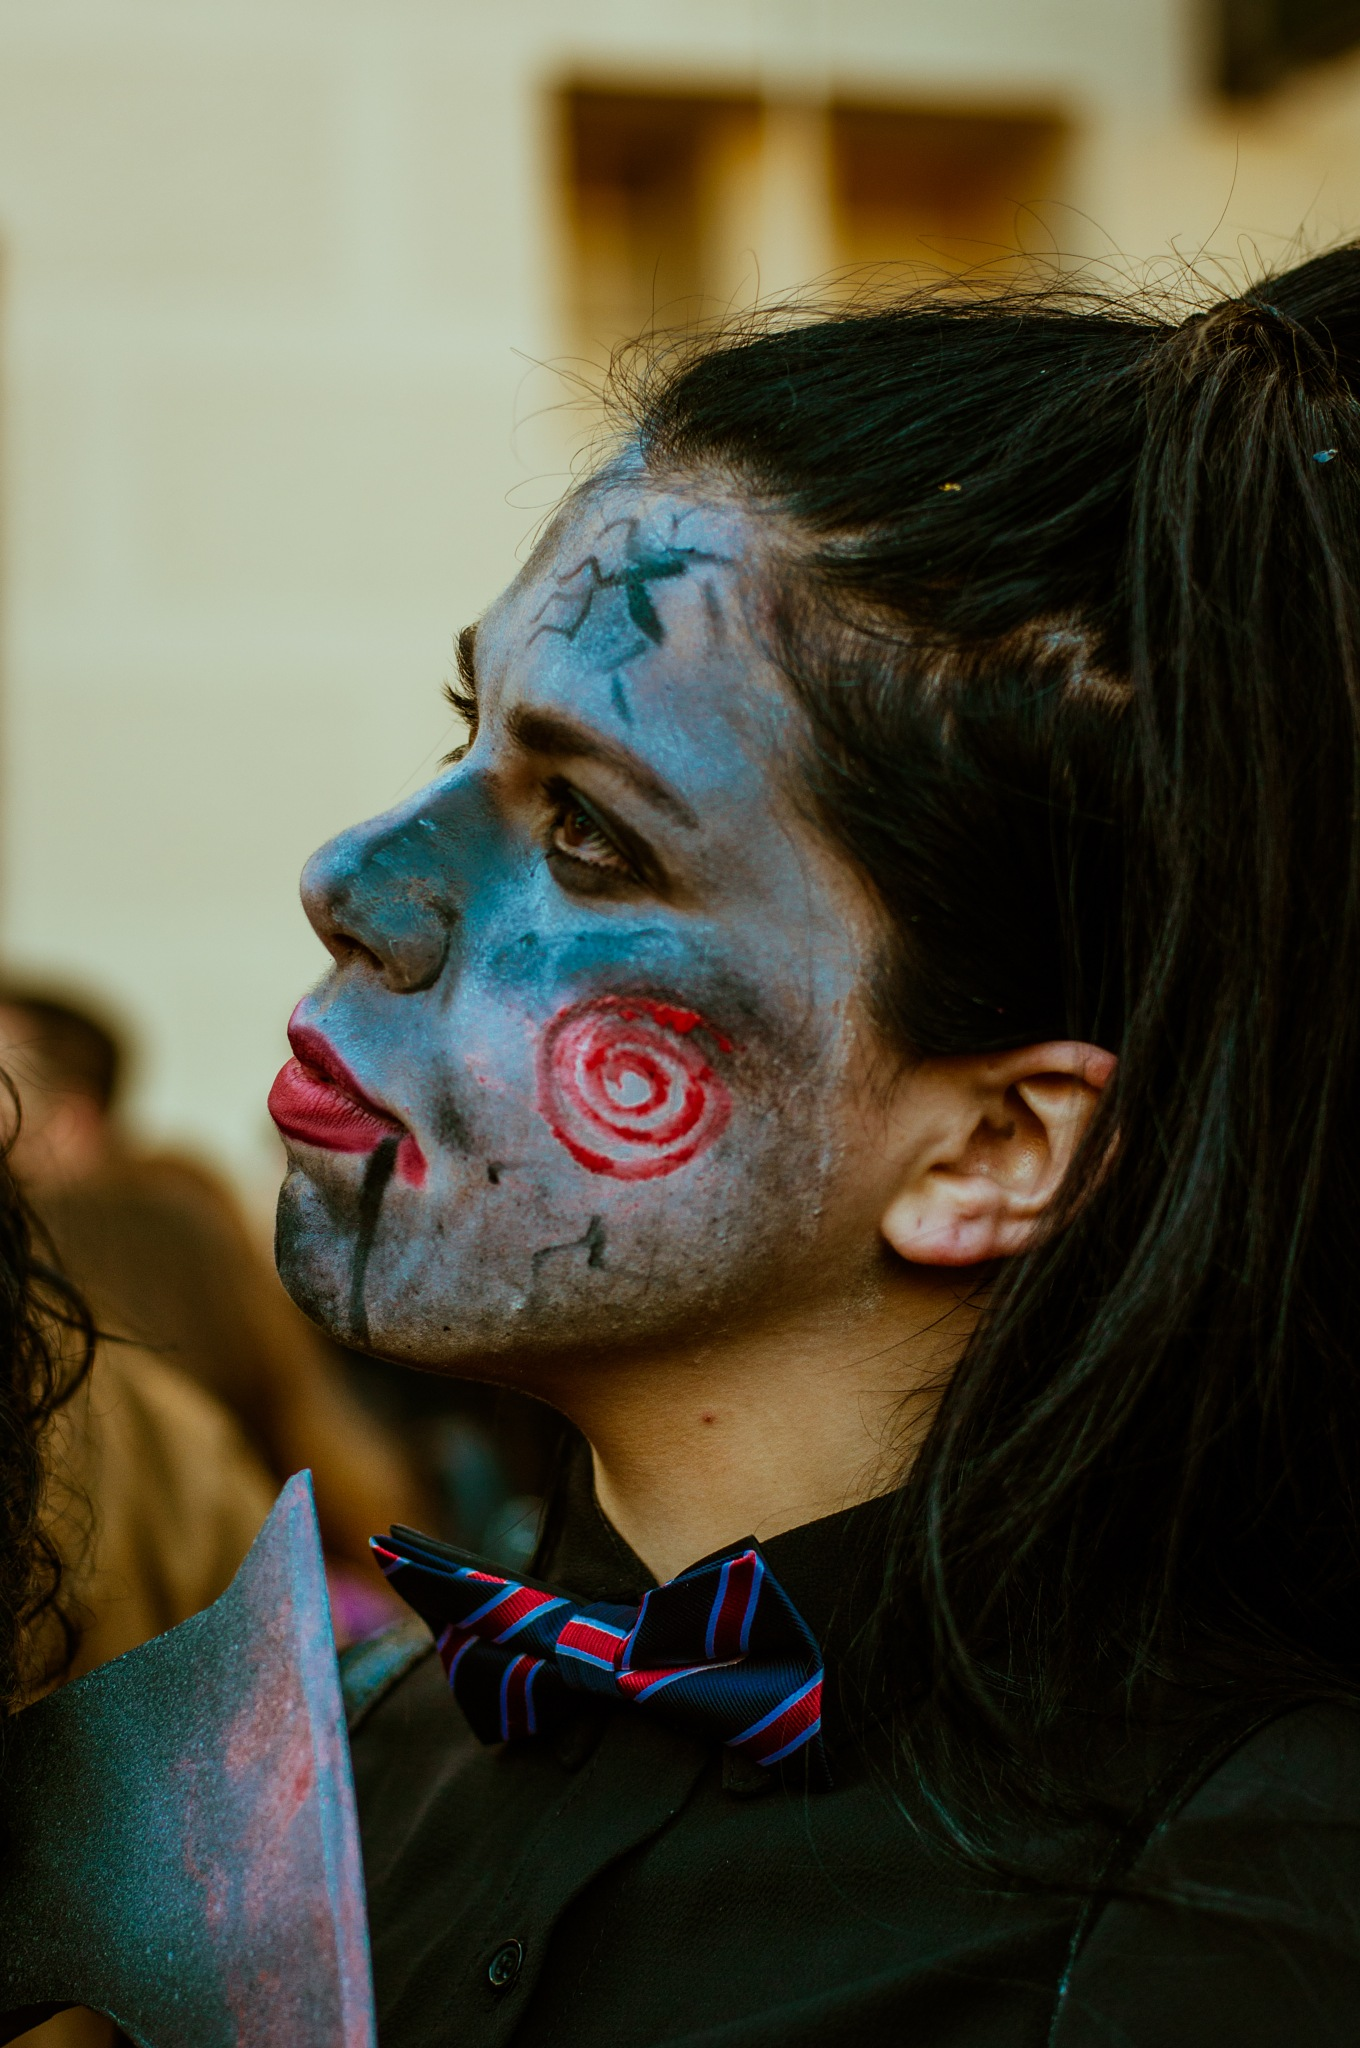 Carnival Faces 10 by Vassilis Vassilakis